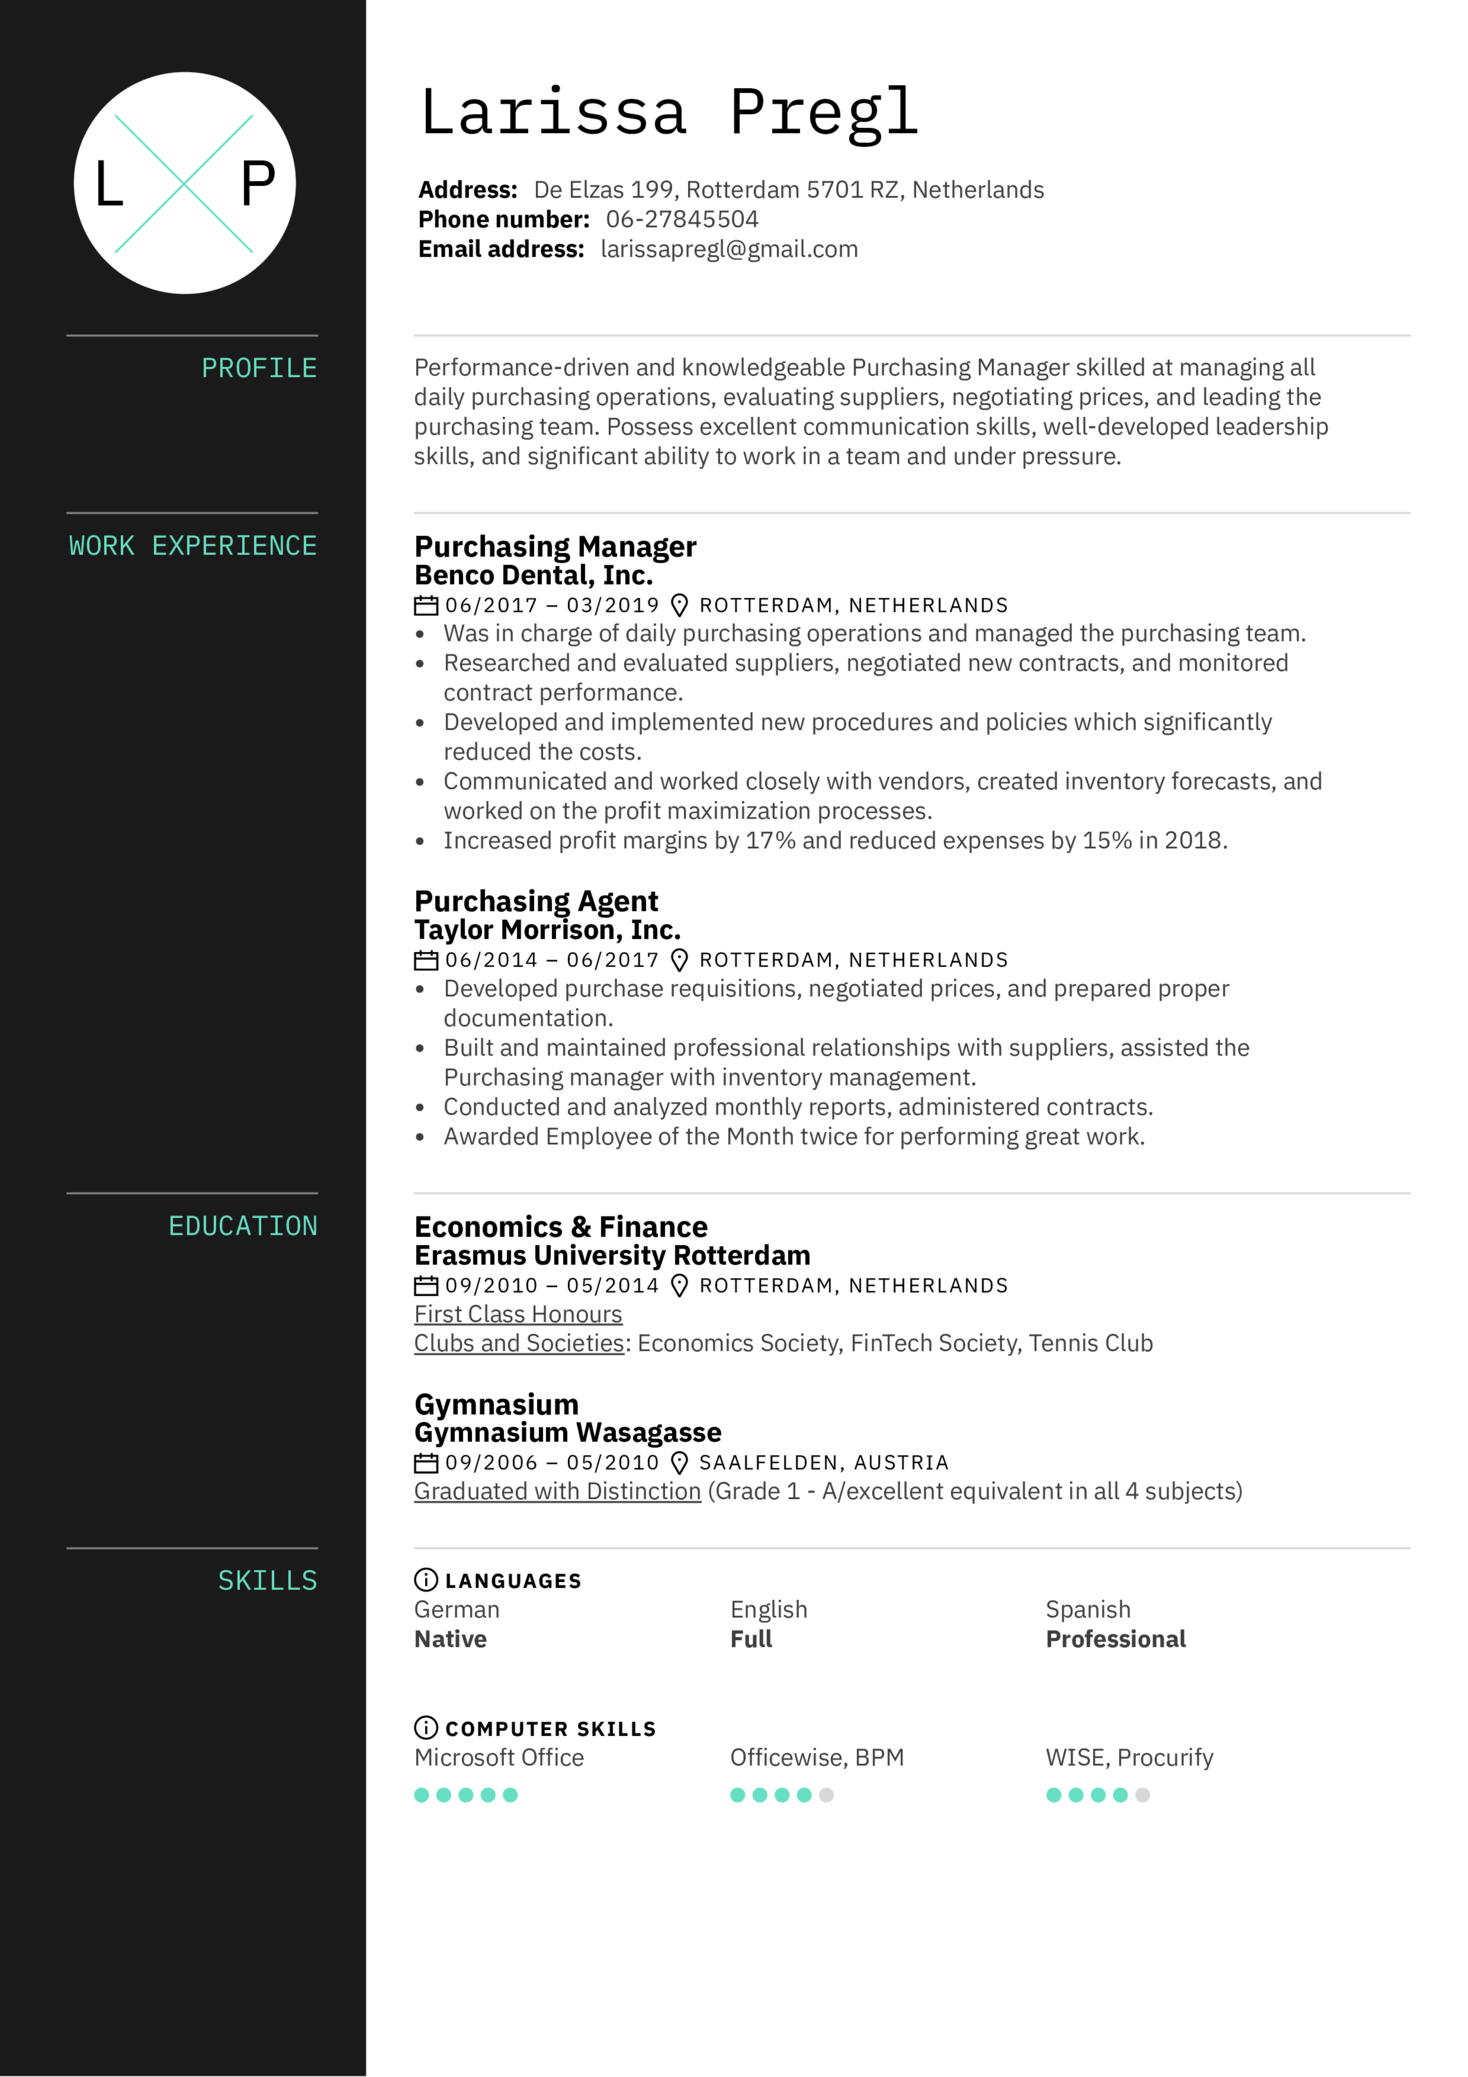 Purchasing Manager Resume Sample (Part 1)